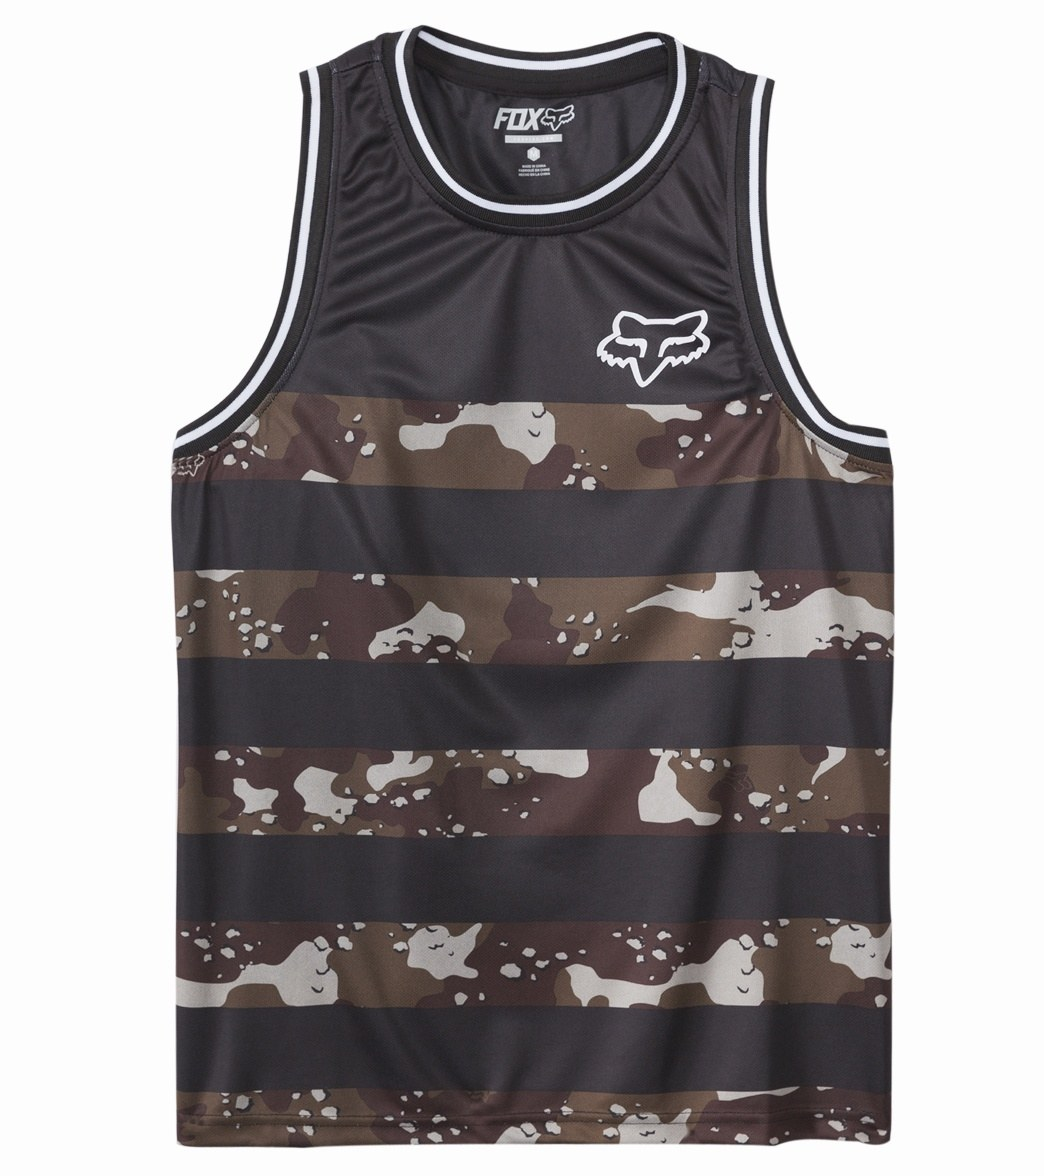 cd6cddf83e484 FOX Men s Mere Tank Top at SwimOutlet.com